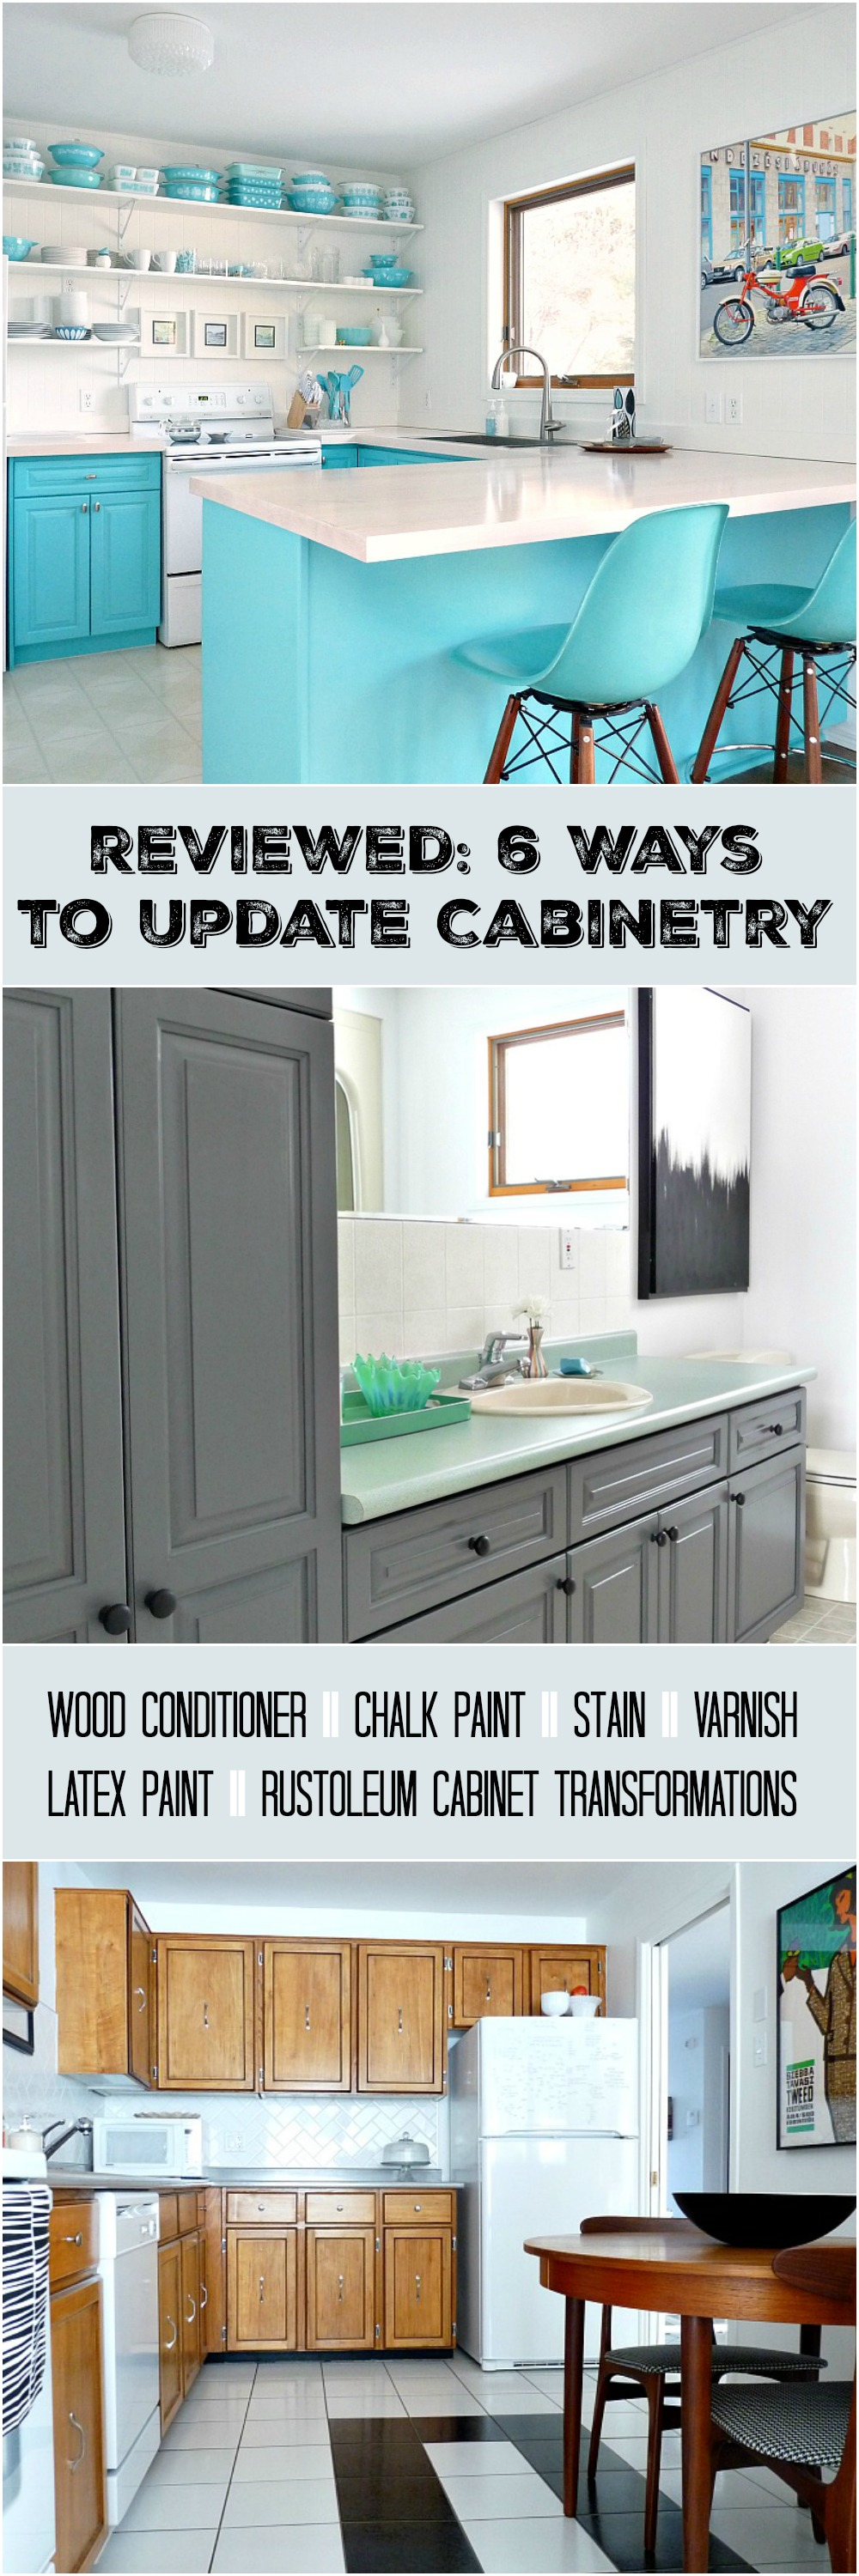 cabinet refinishing 101: latex paint vs. stain vs. rust-oleum